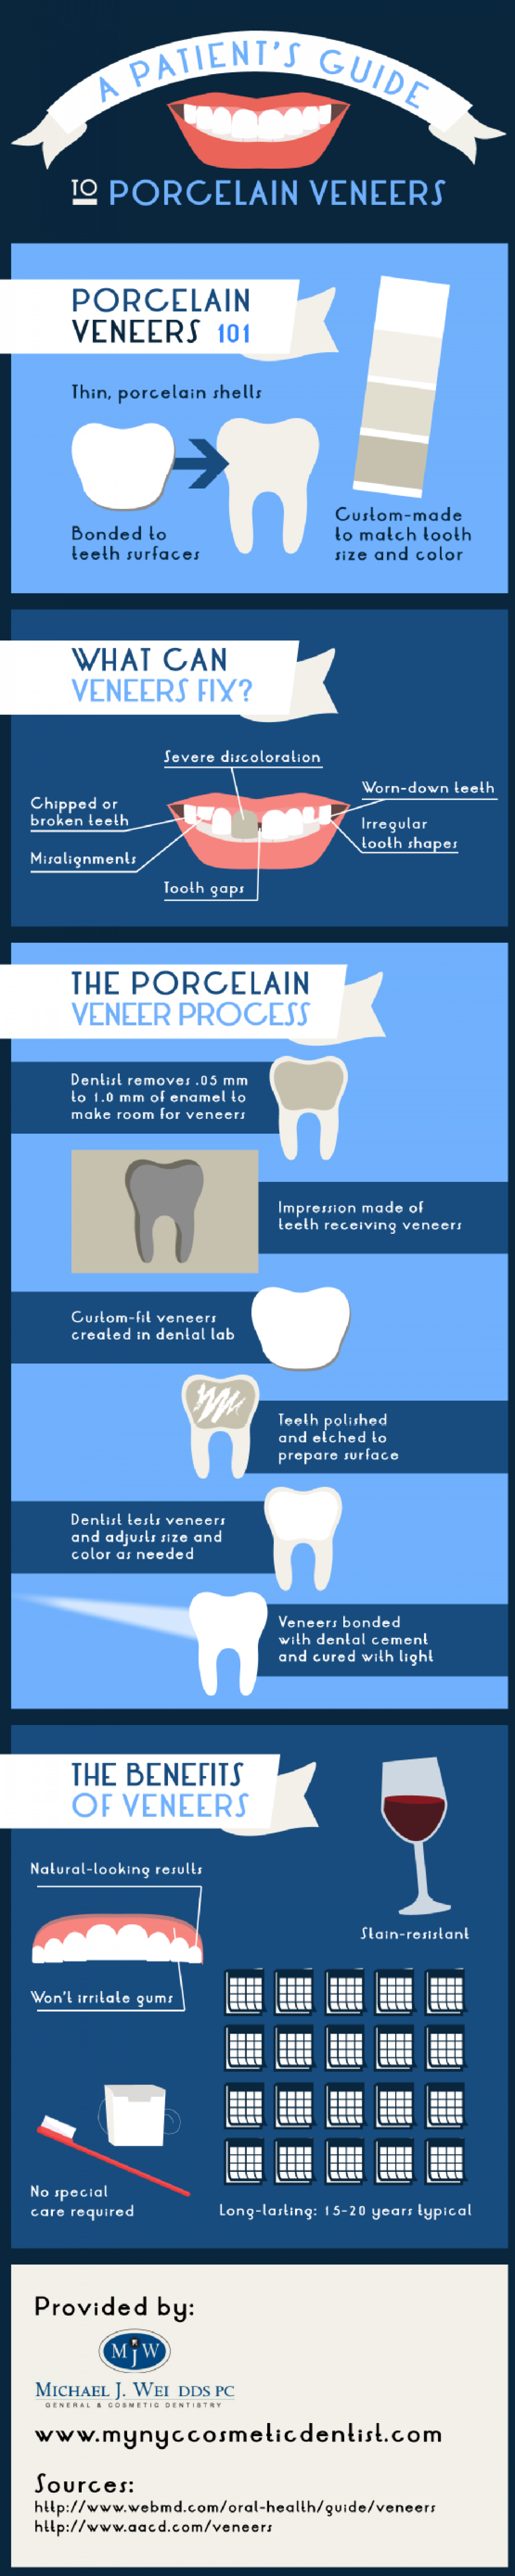 A Patient's Guide to Porcelain Veneers Infographic